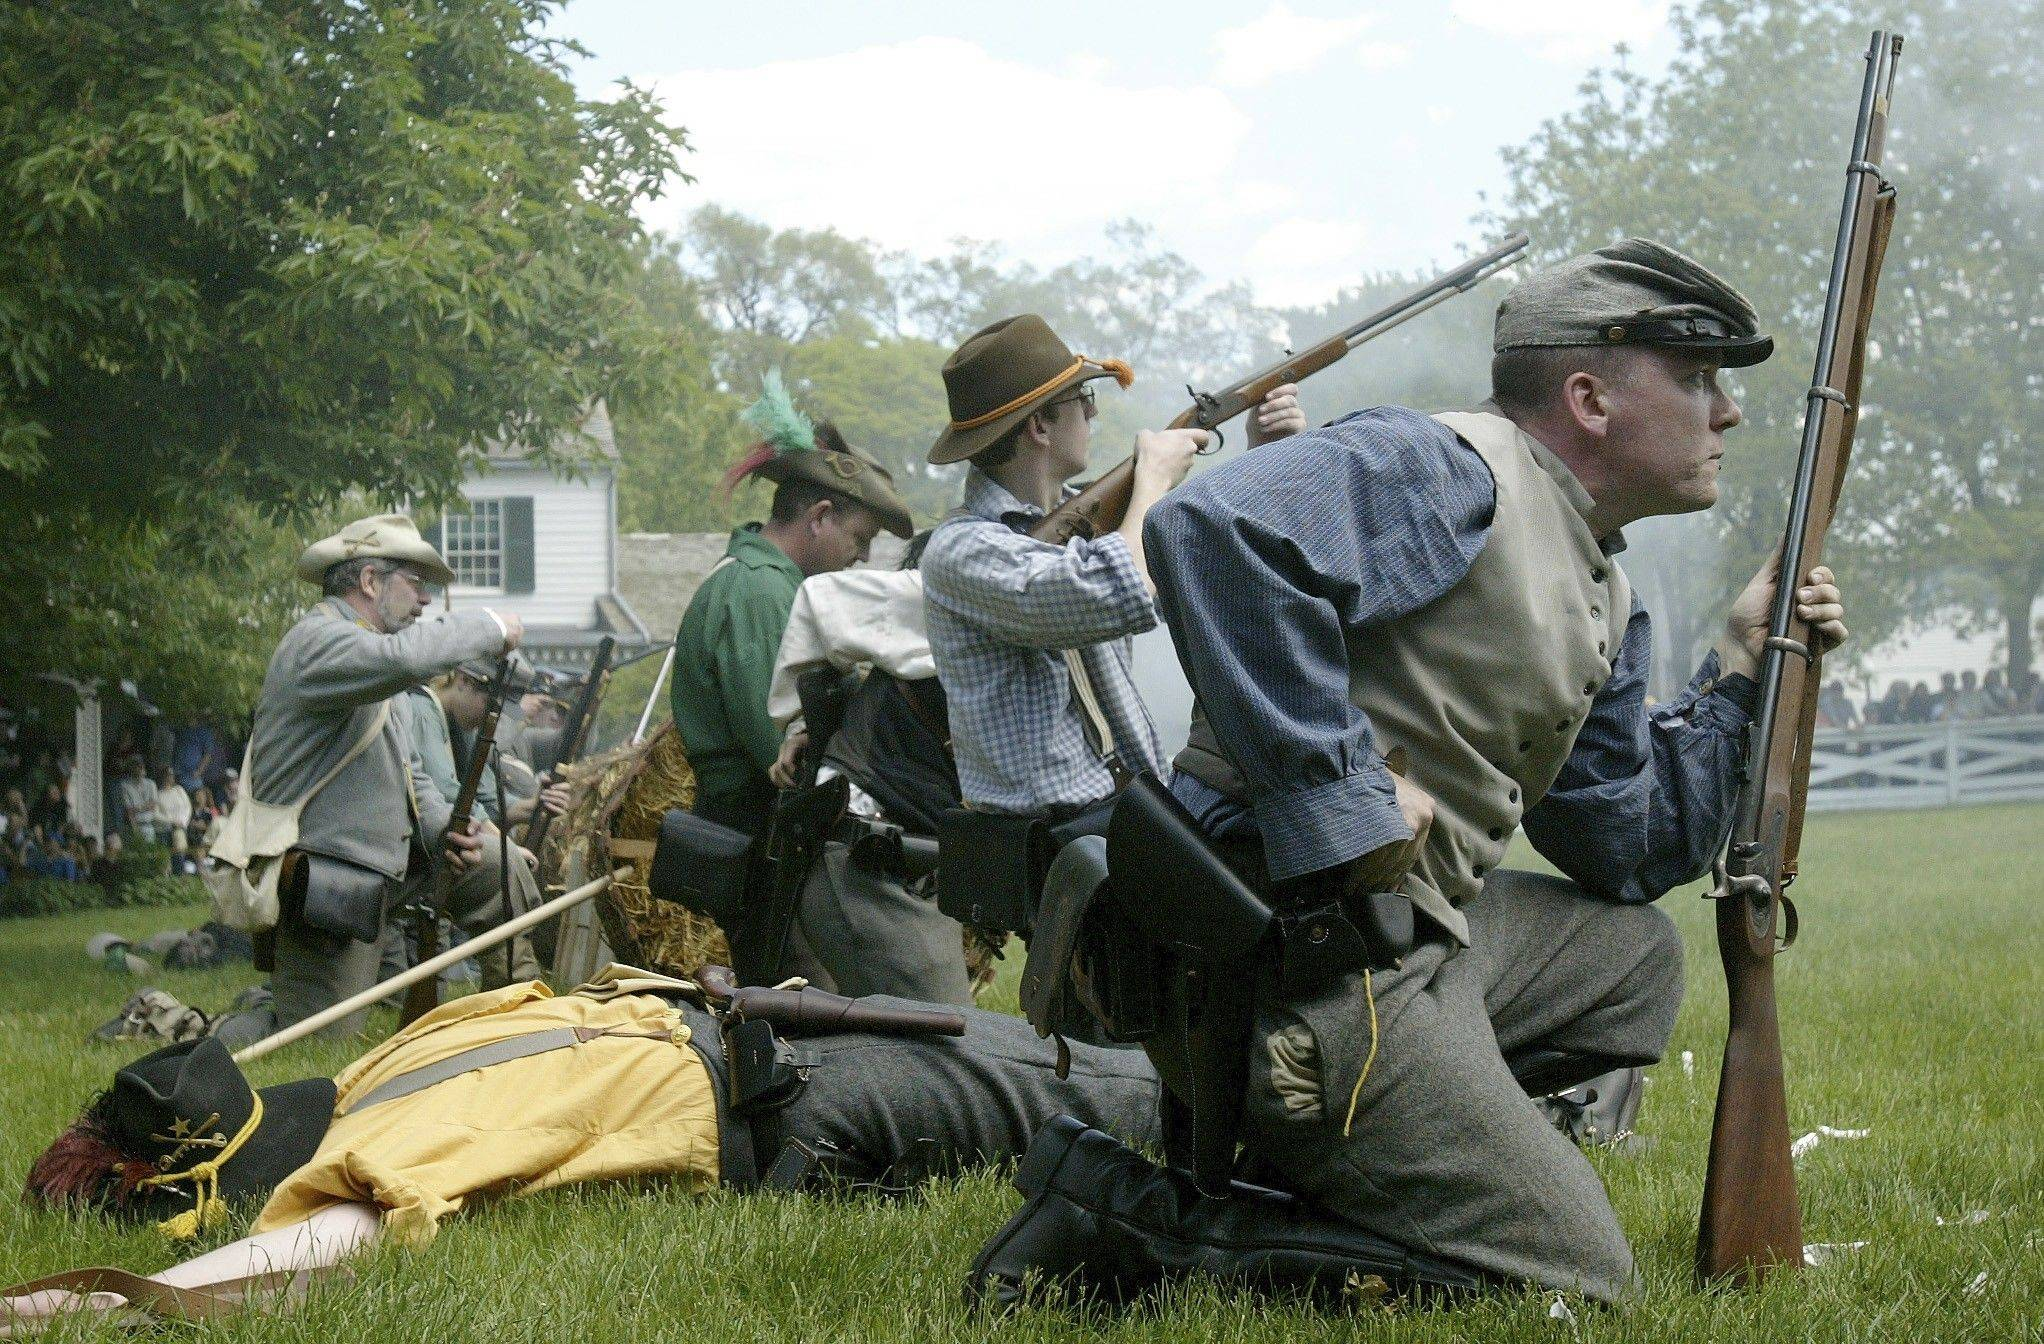 Residents will have many chances to see Civil War re-enactors in DuPage this year and beyond as local groups explore history and local ties to the war, which started 150 years ago.